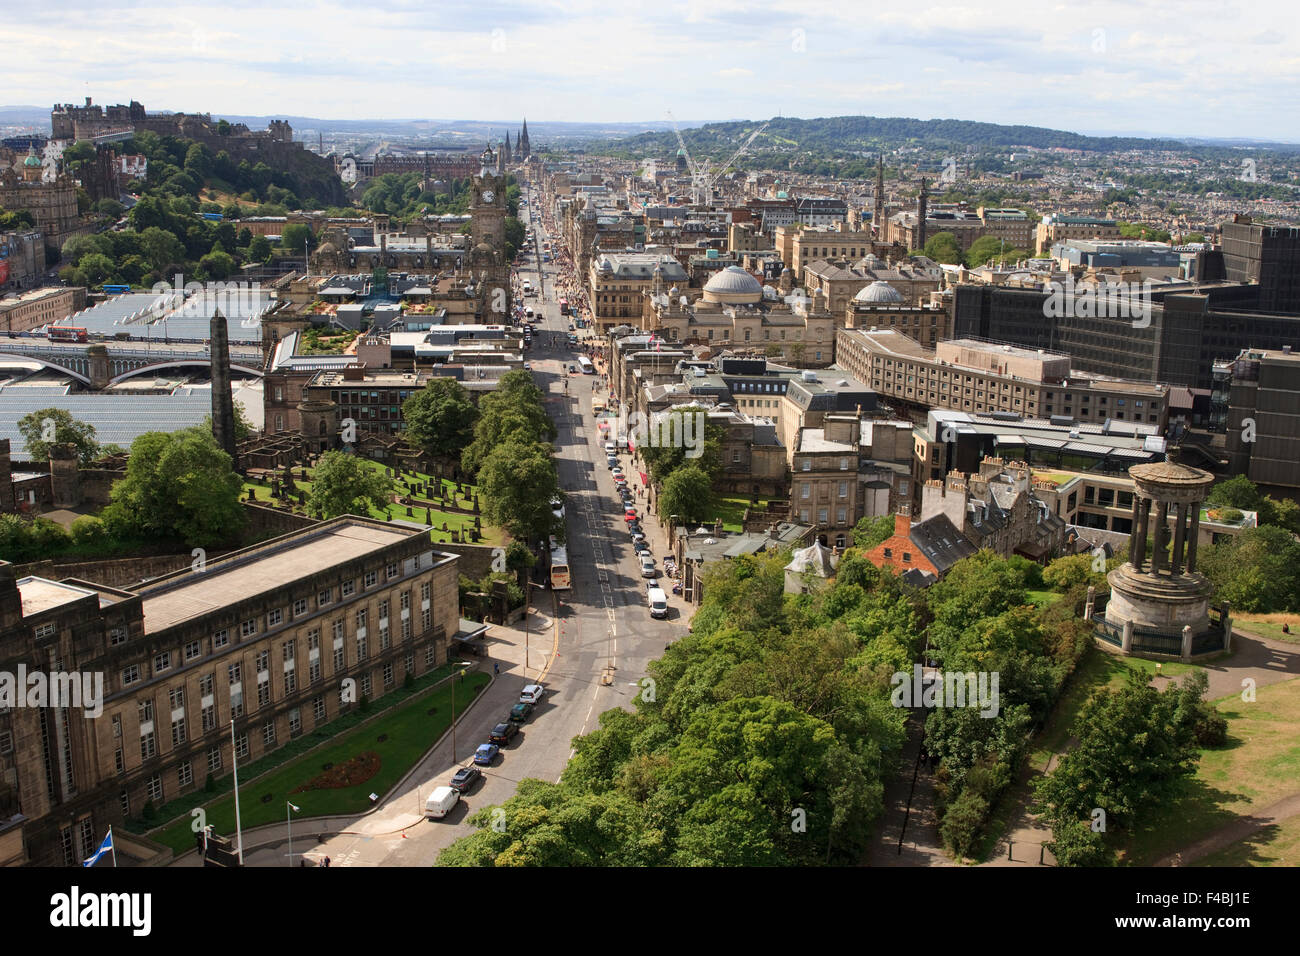 View from the Nelson Monument in Edinburgh, Scotland, looking down Princes Street. Stock Photo